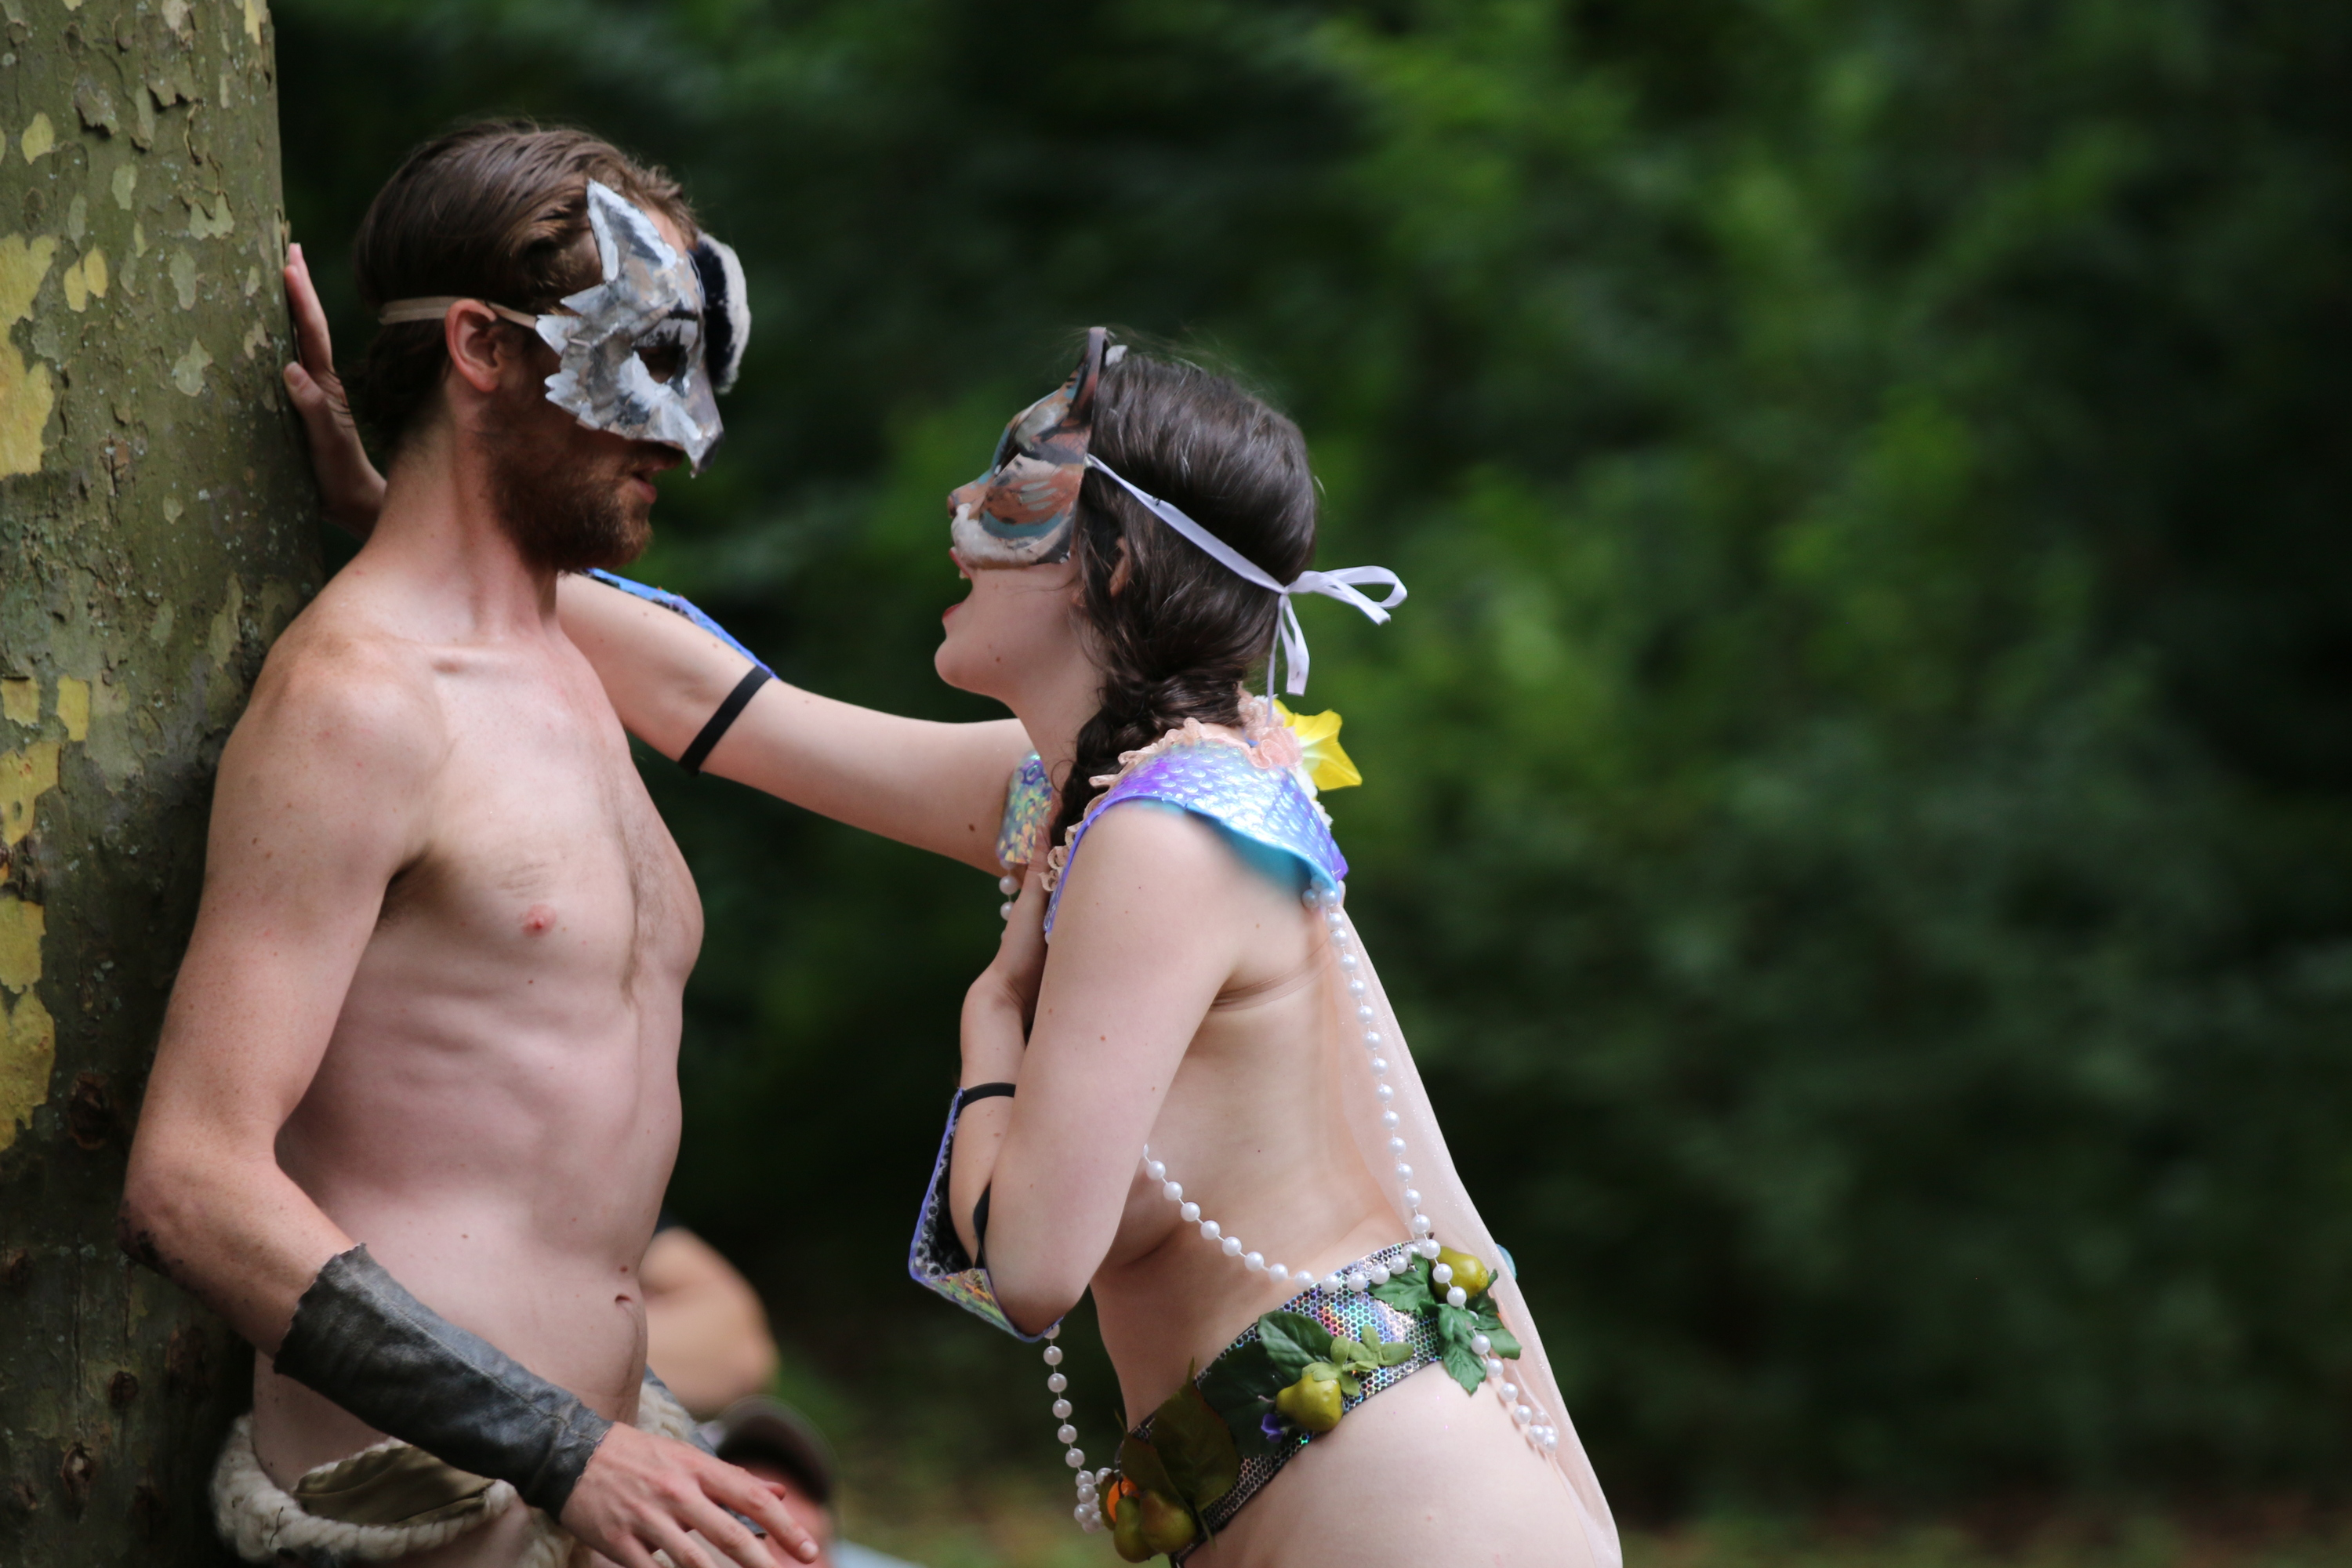 Get ready for more naked Shakespeare in Prospect Park this August